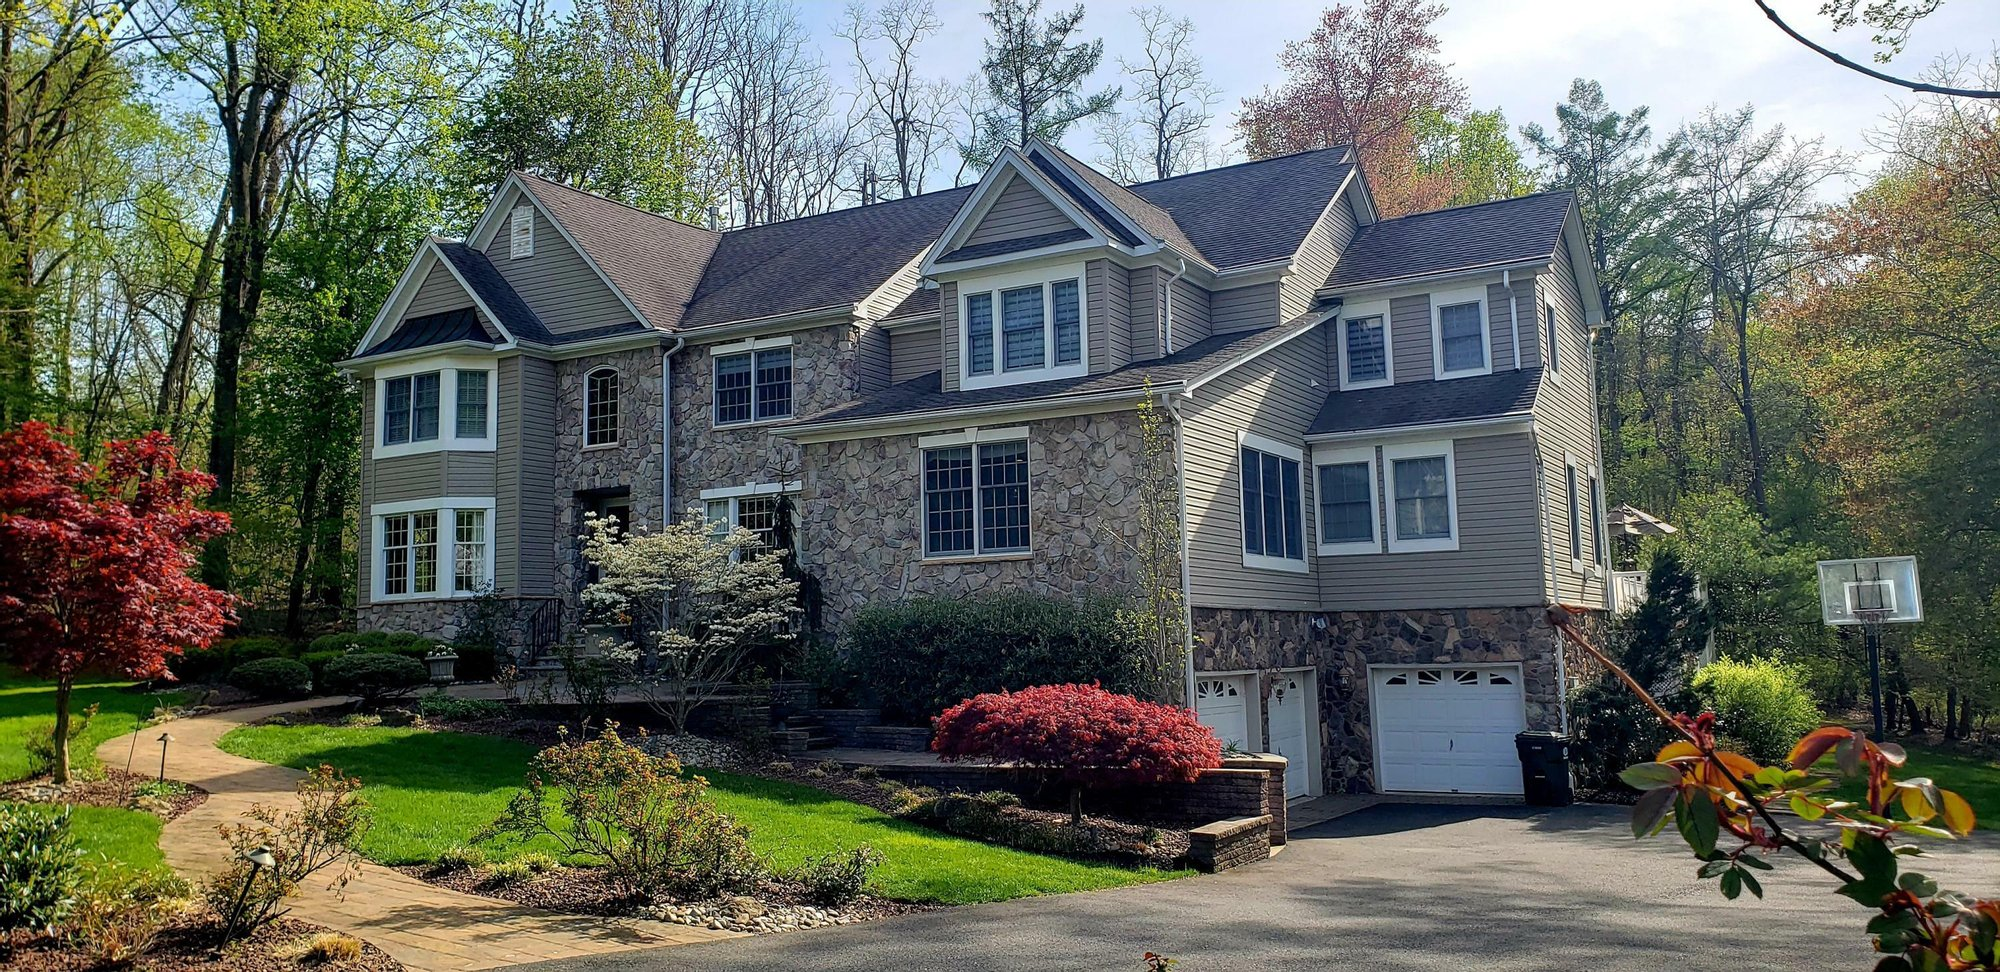 House in Marlboro Township, New Jersey, United States 1